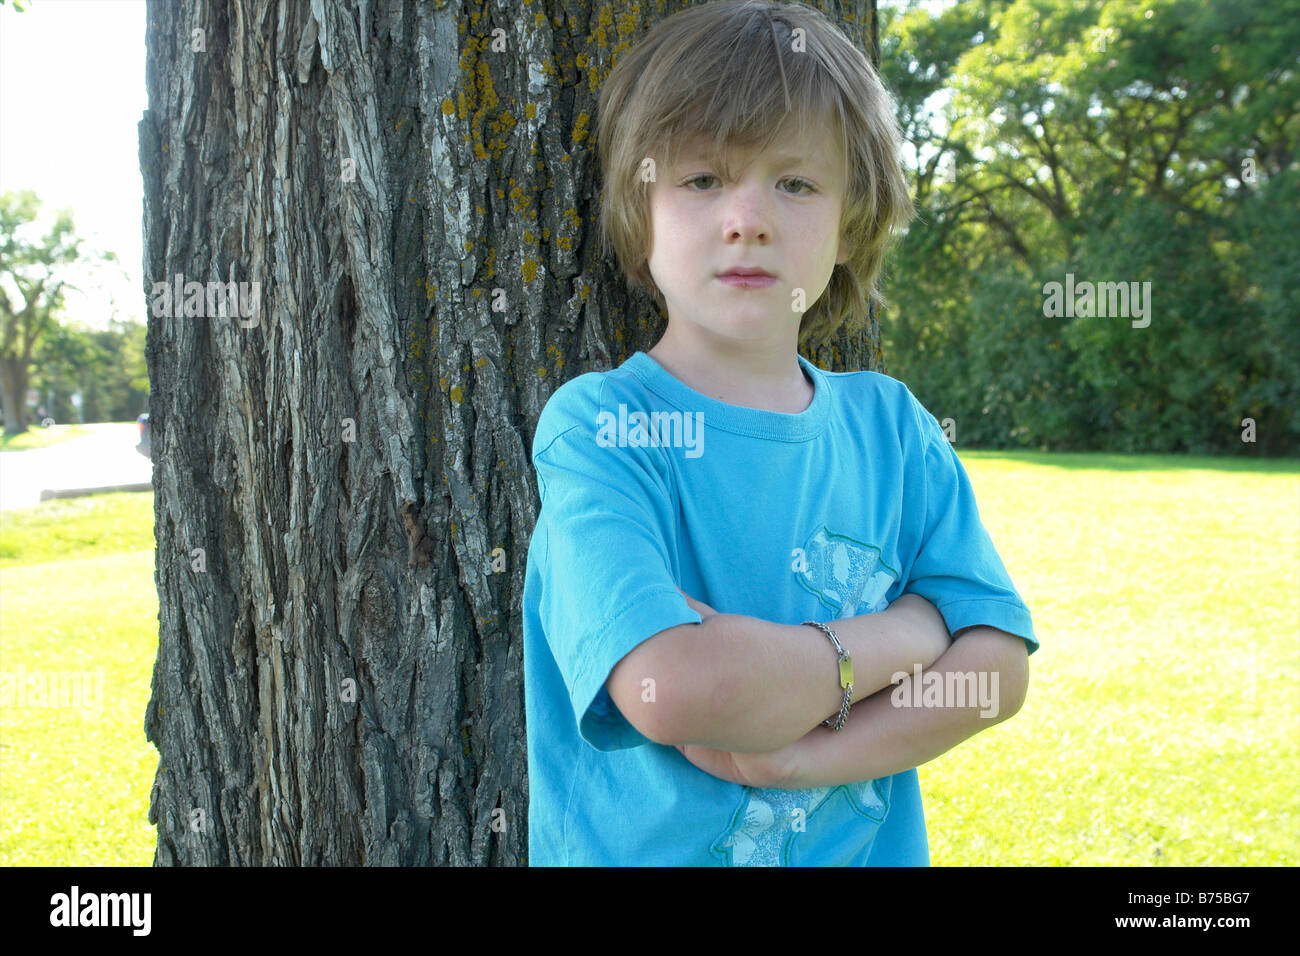 Six year old with arms crossed stands beside tree, Winnipeg, Canada - Stock Image